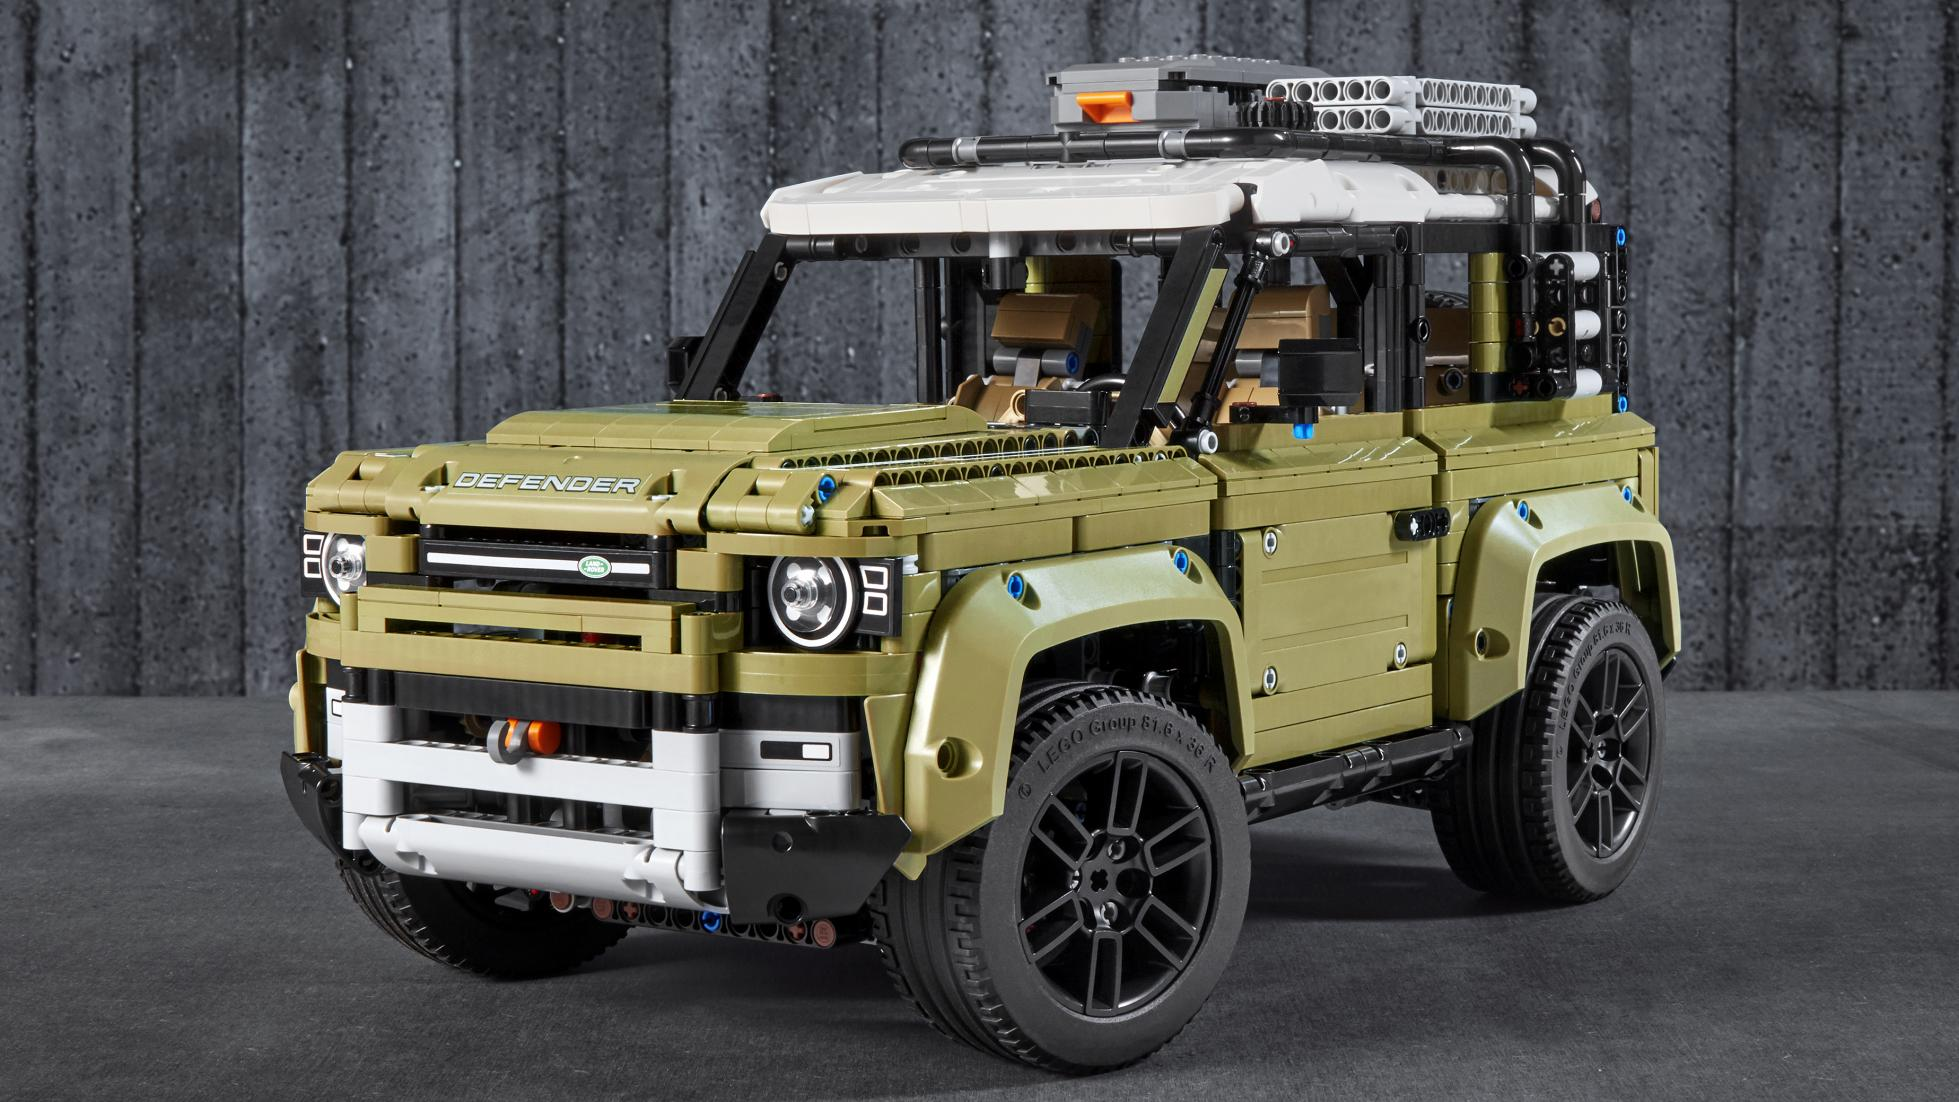 Lego Technic Land Rover Defender has low-range and more